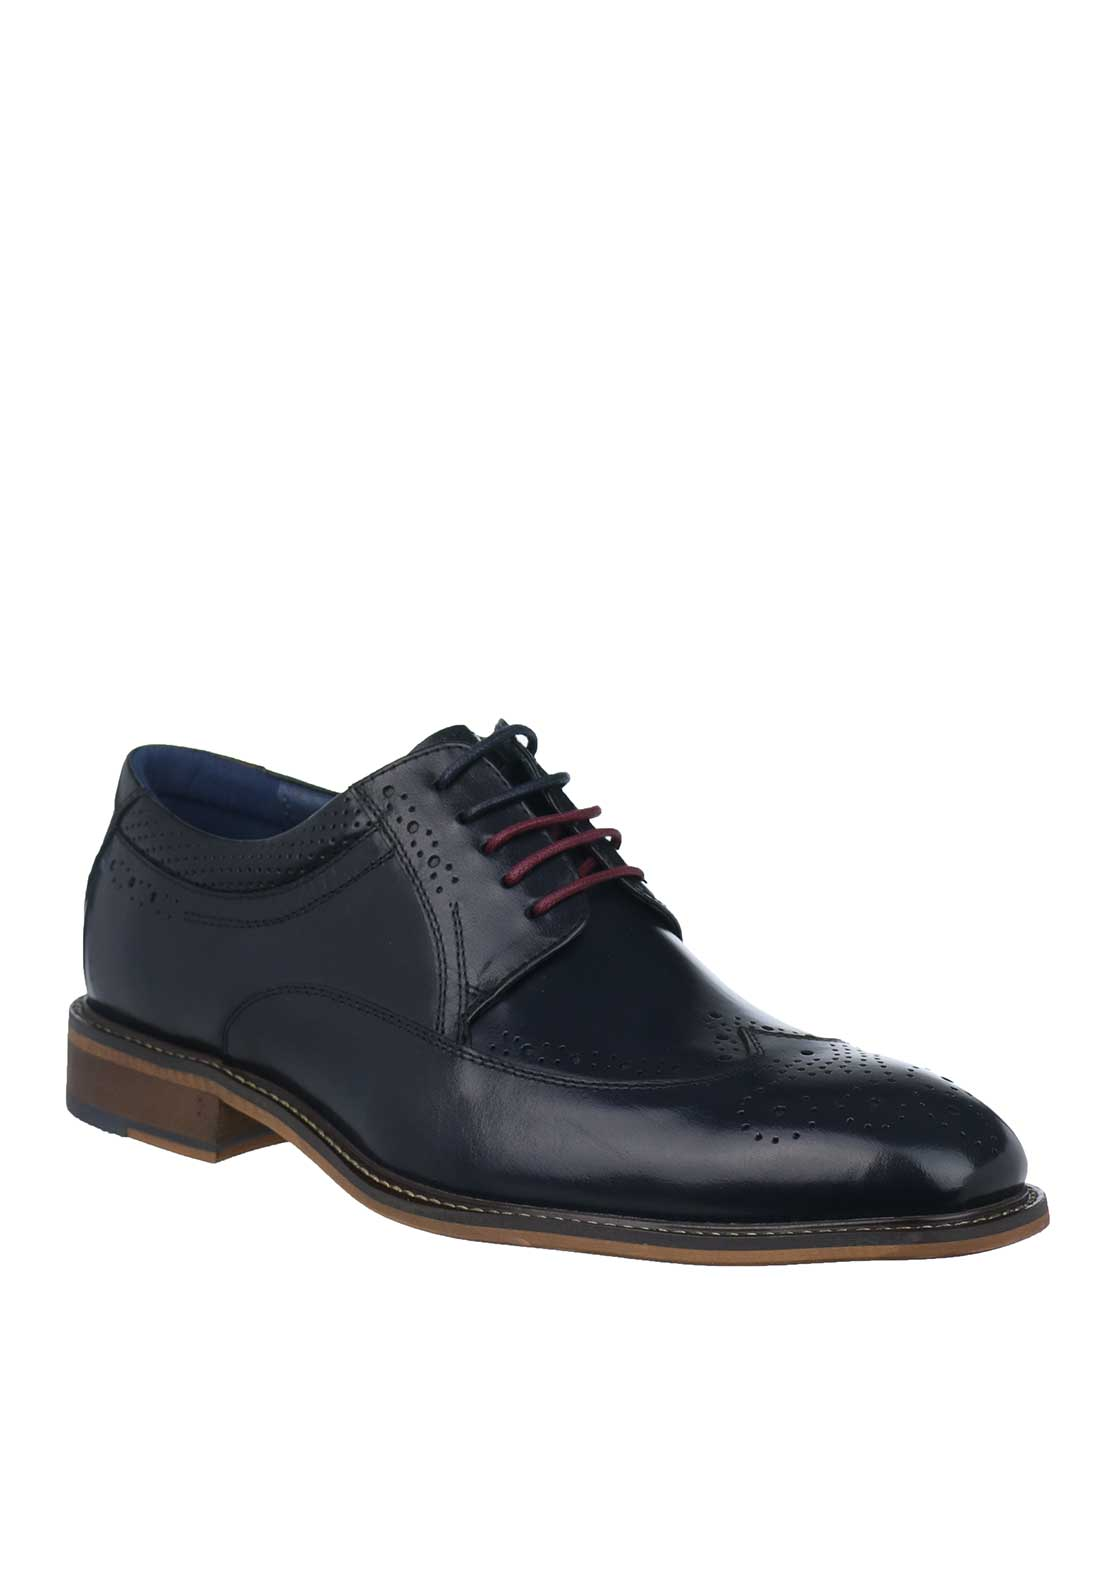 Tommy Bowe Olimpico Leather Brogue Shoes, Navy